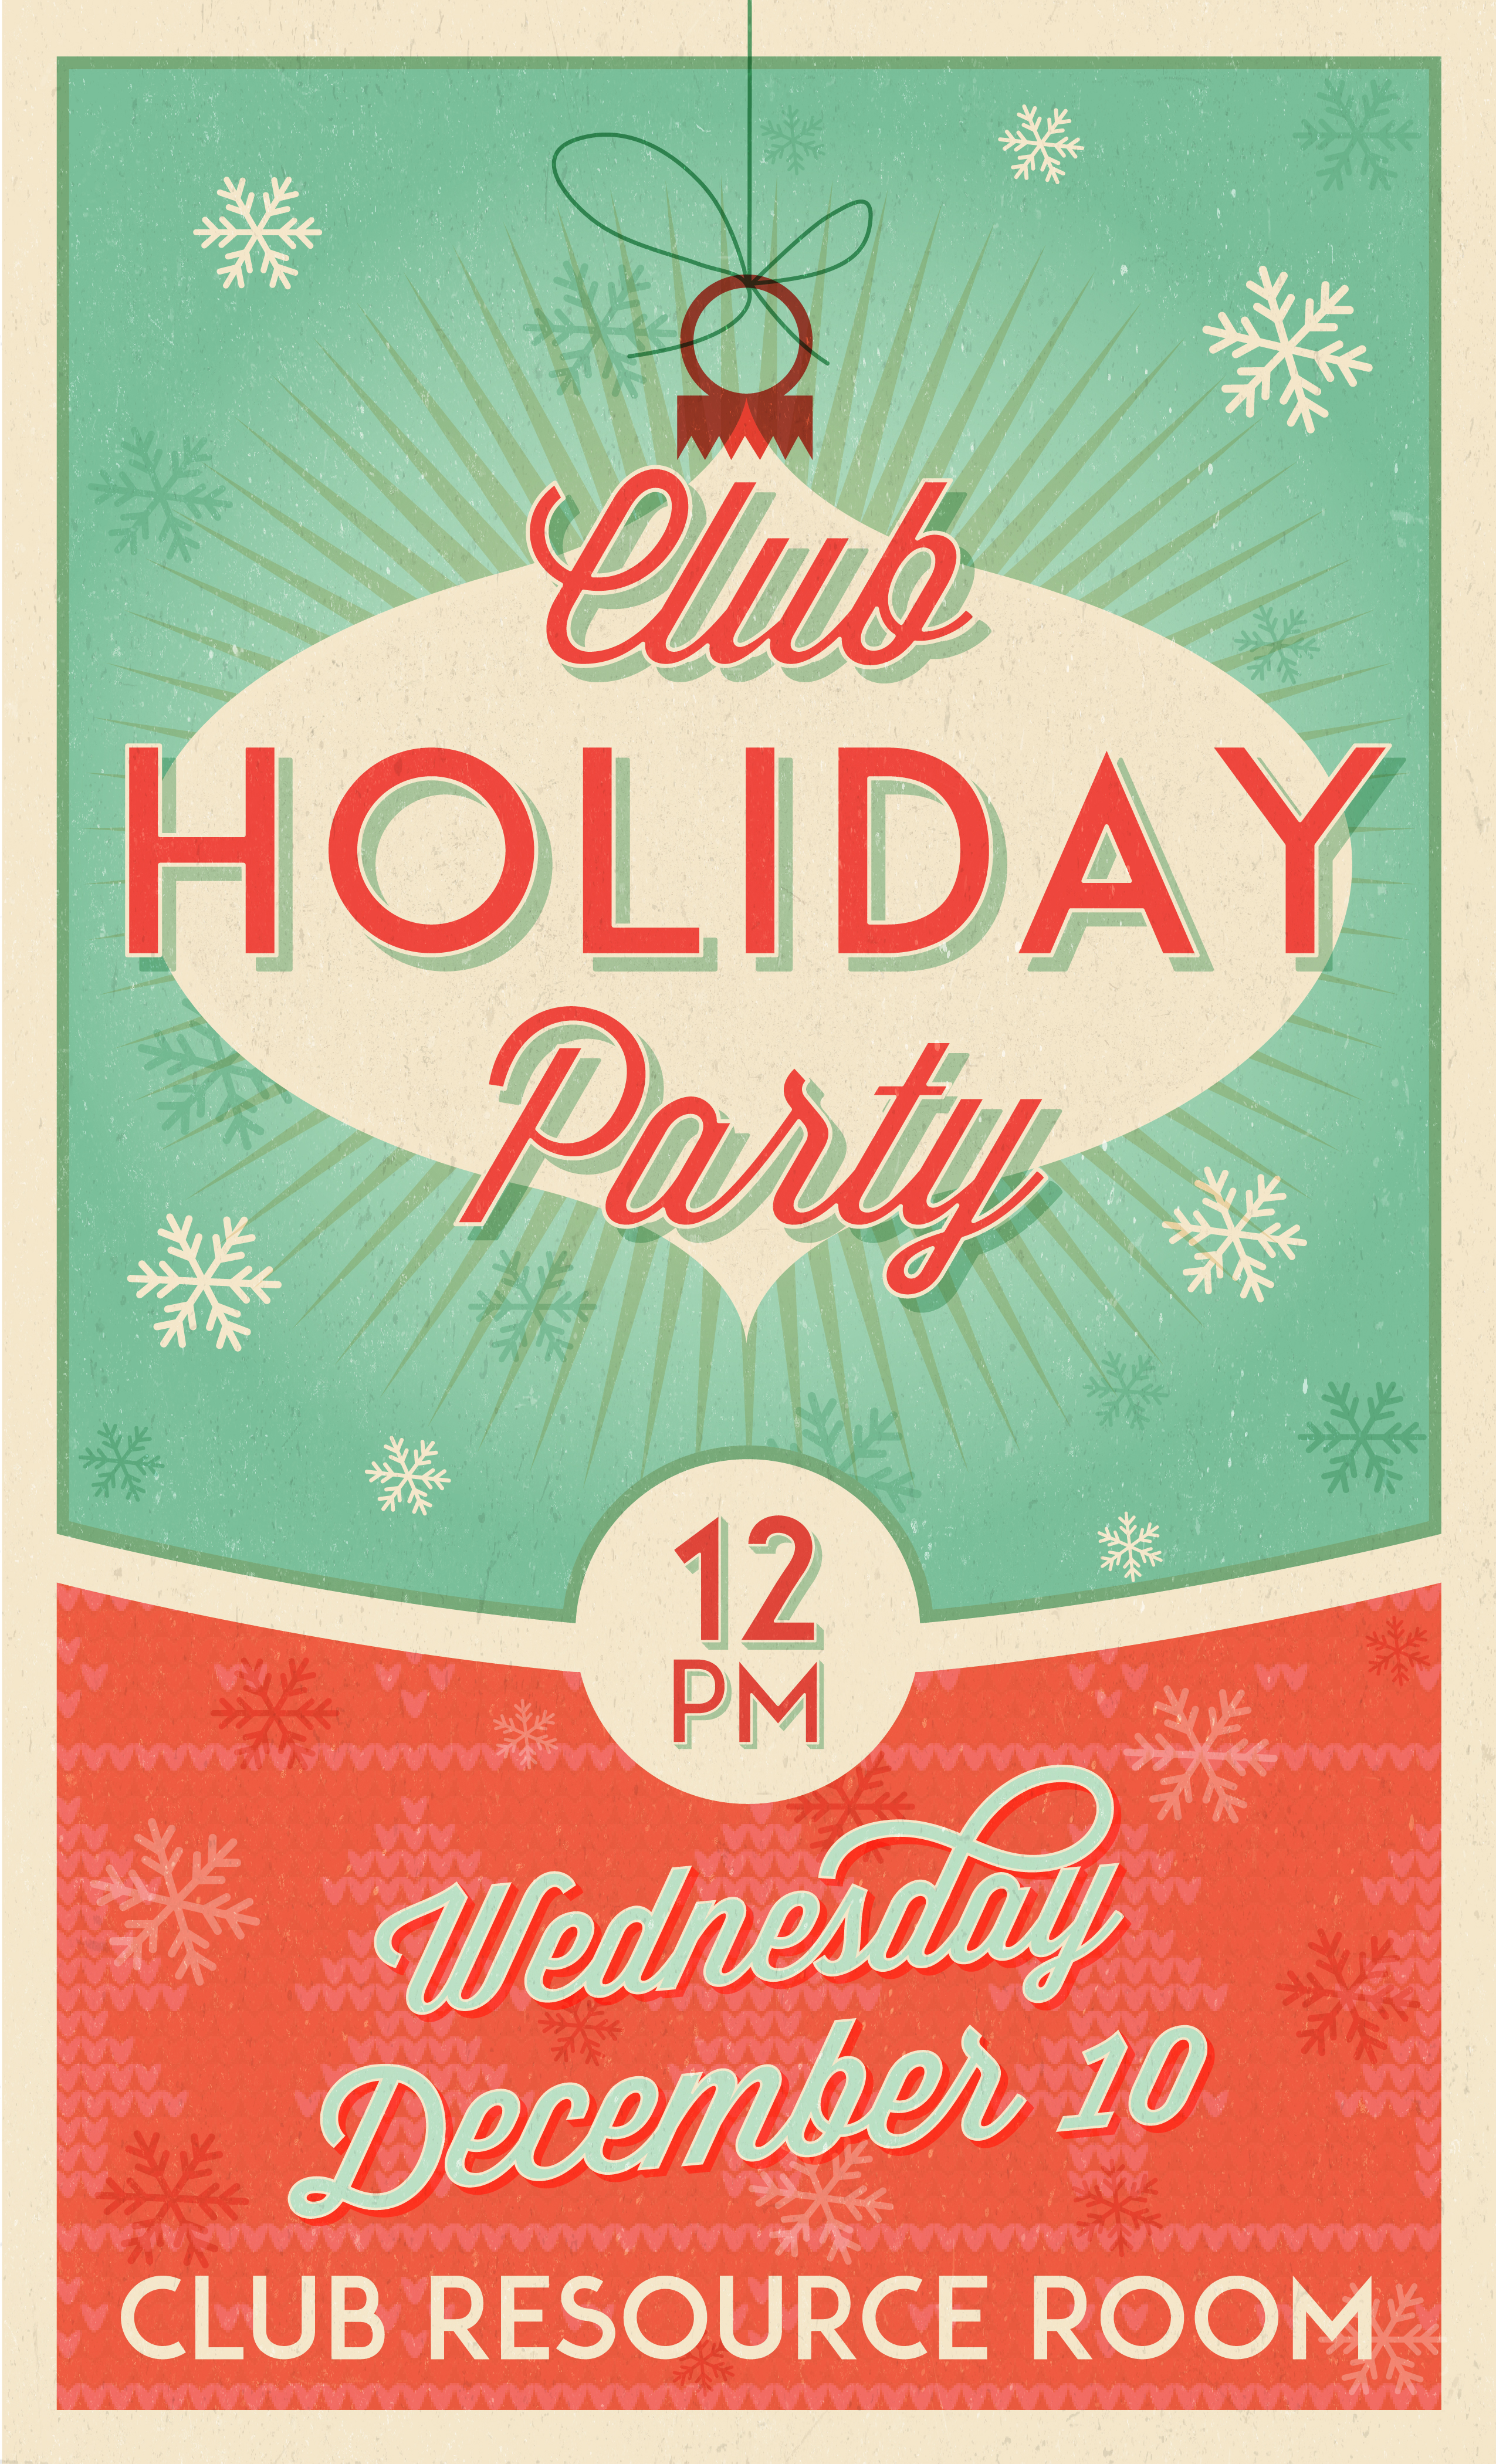 ClubHolidayParty-01